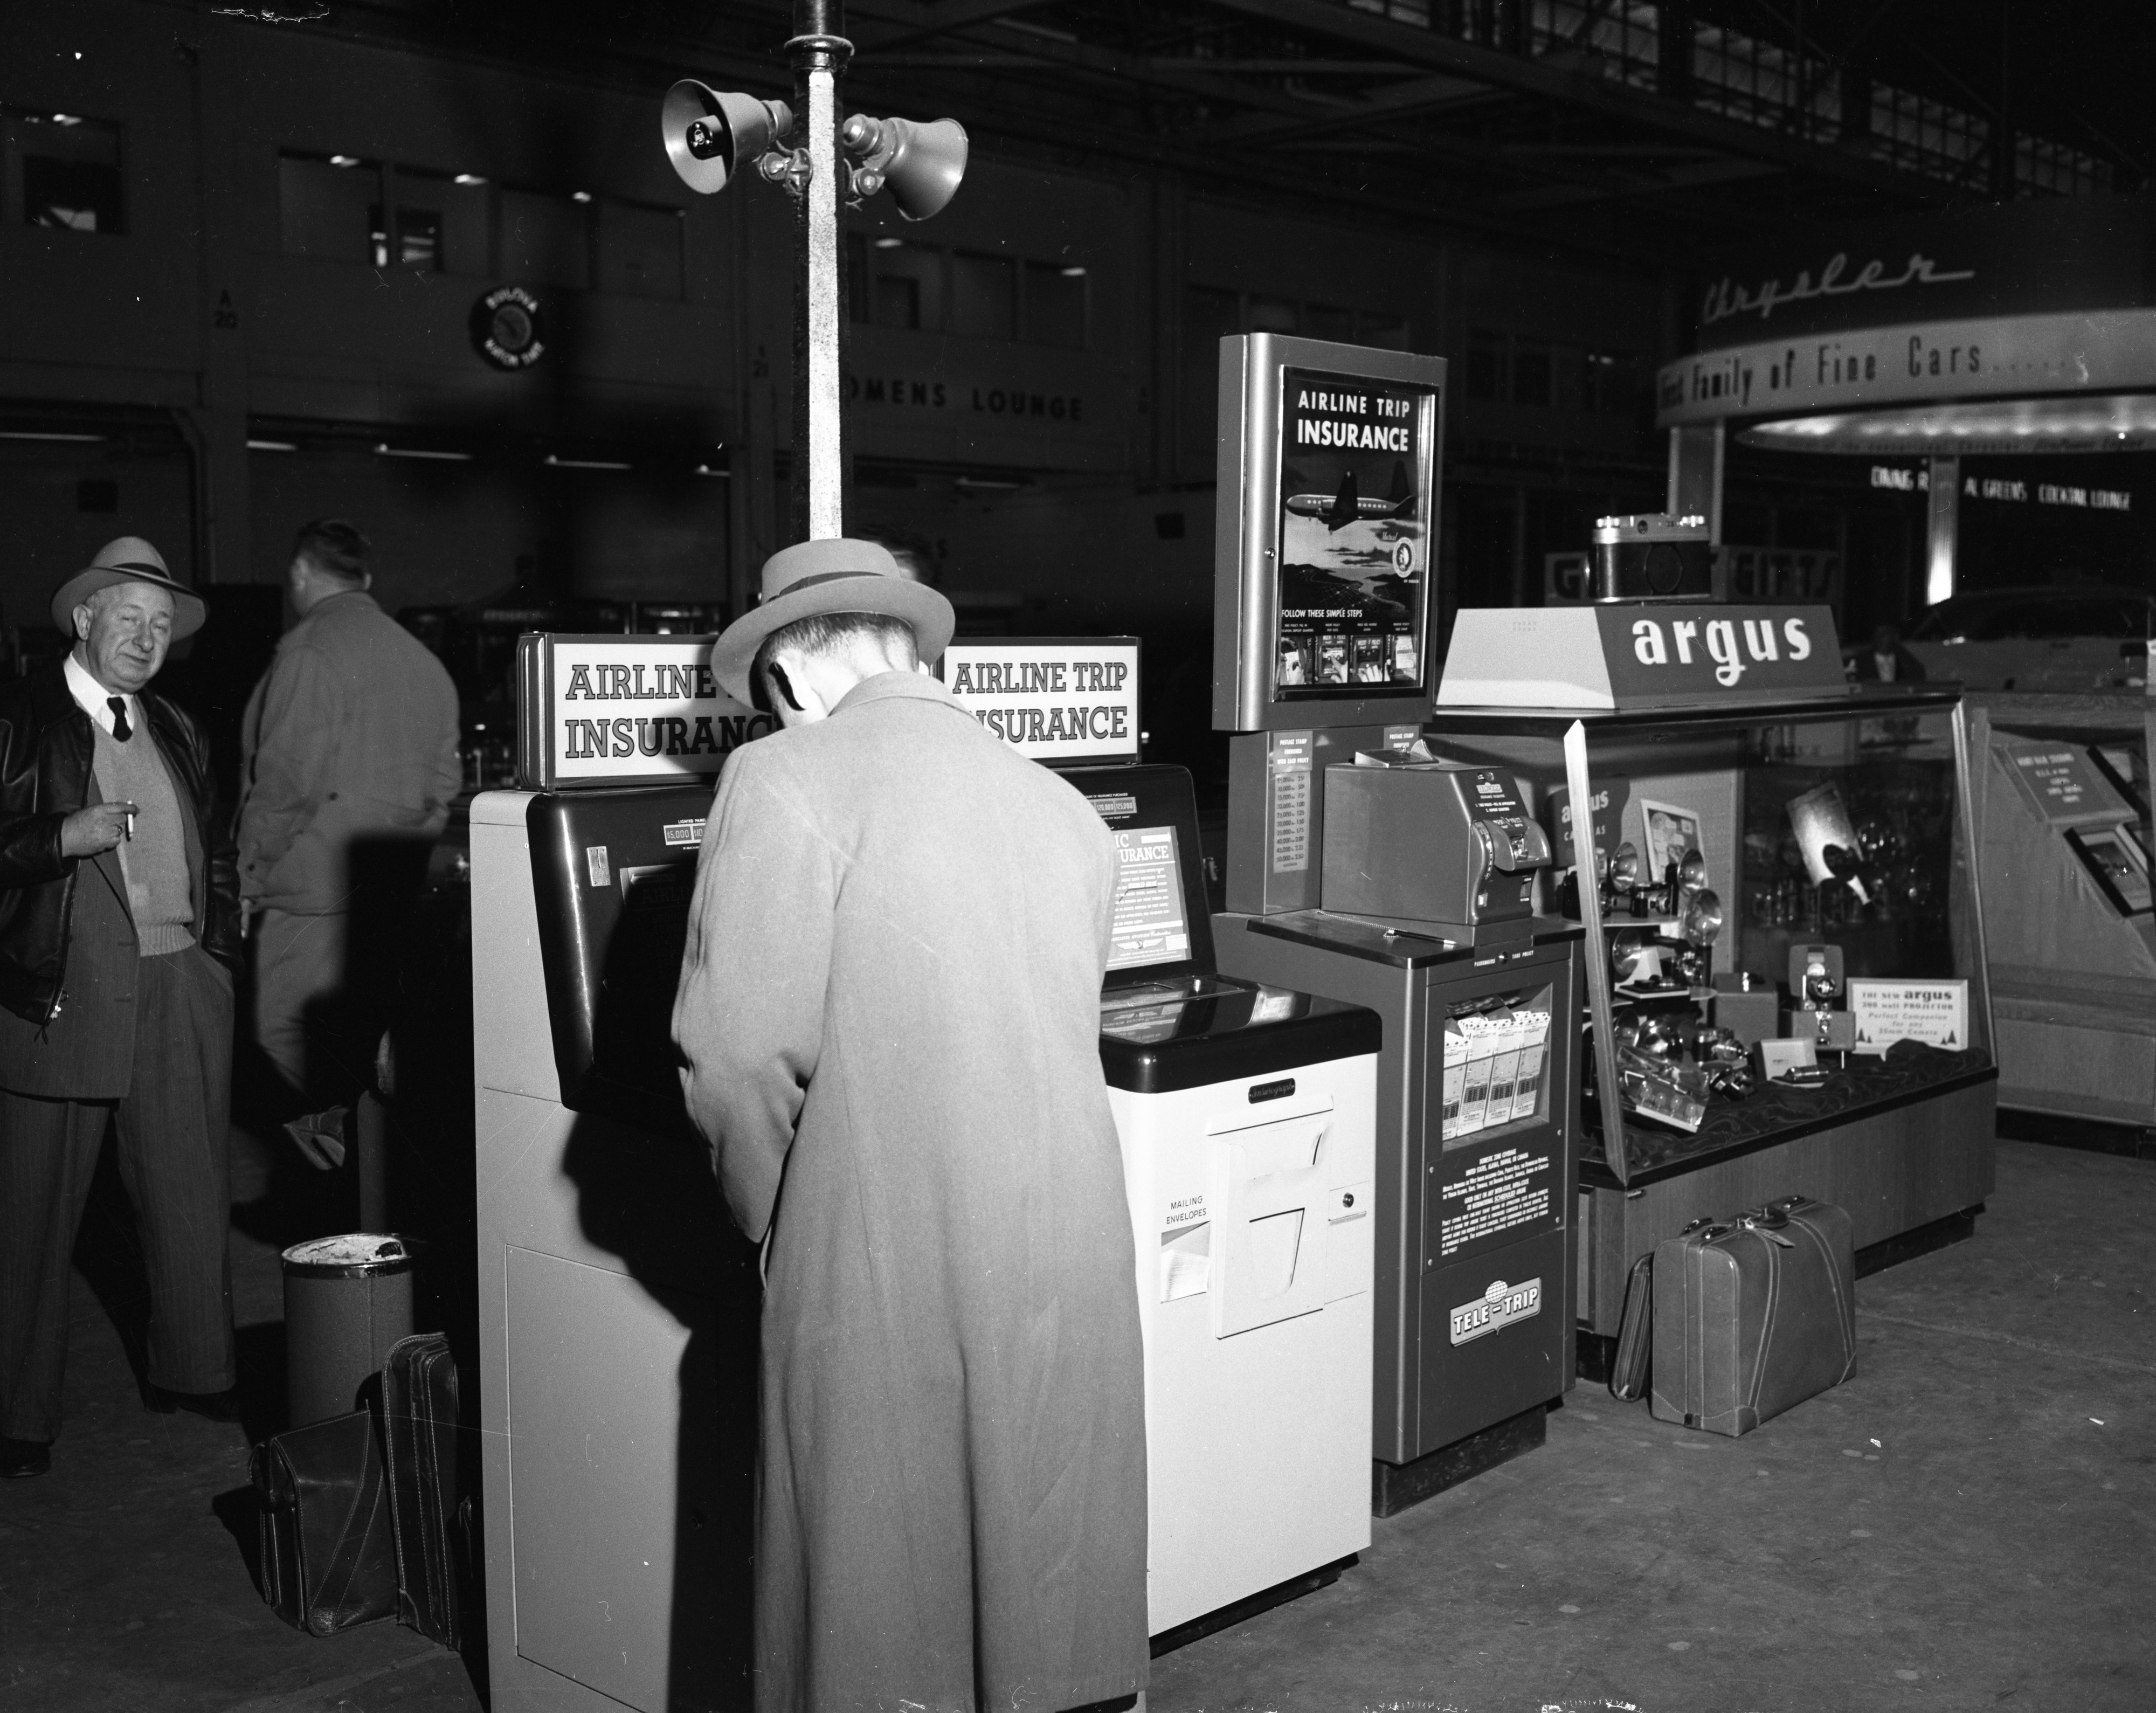 Travel Insurance Kiosk at Willow Run Airport, February 1954 image